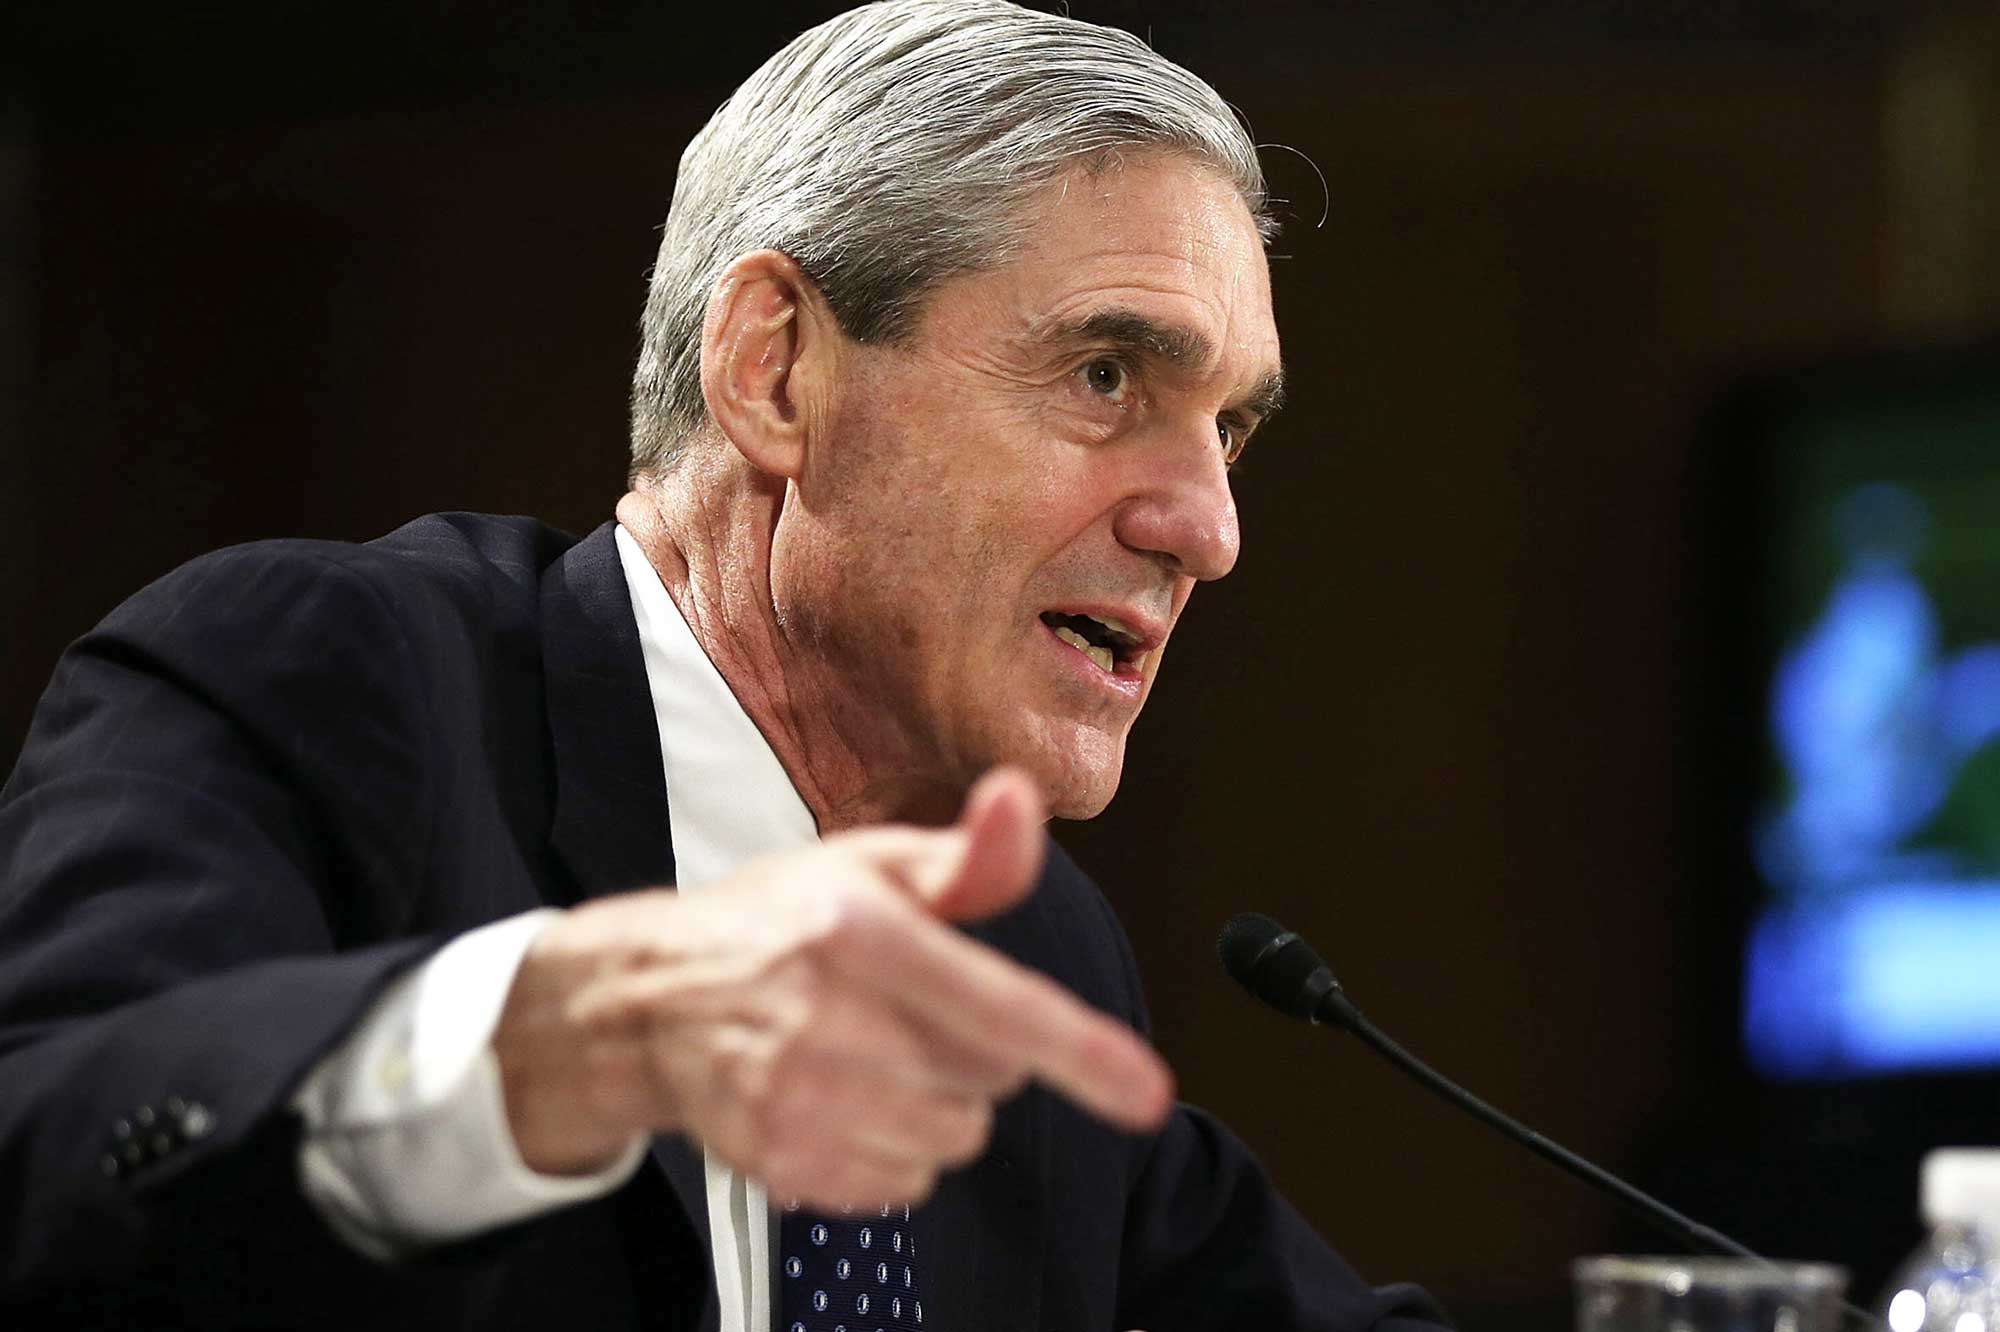 Robert Mueller's report is finally finished. Here's what we know about his probe so far